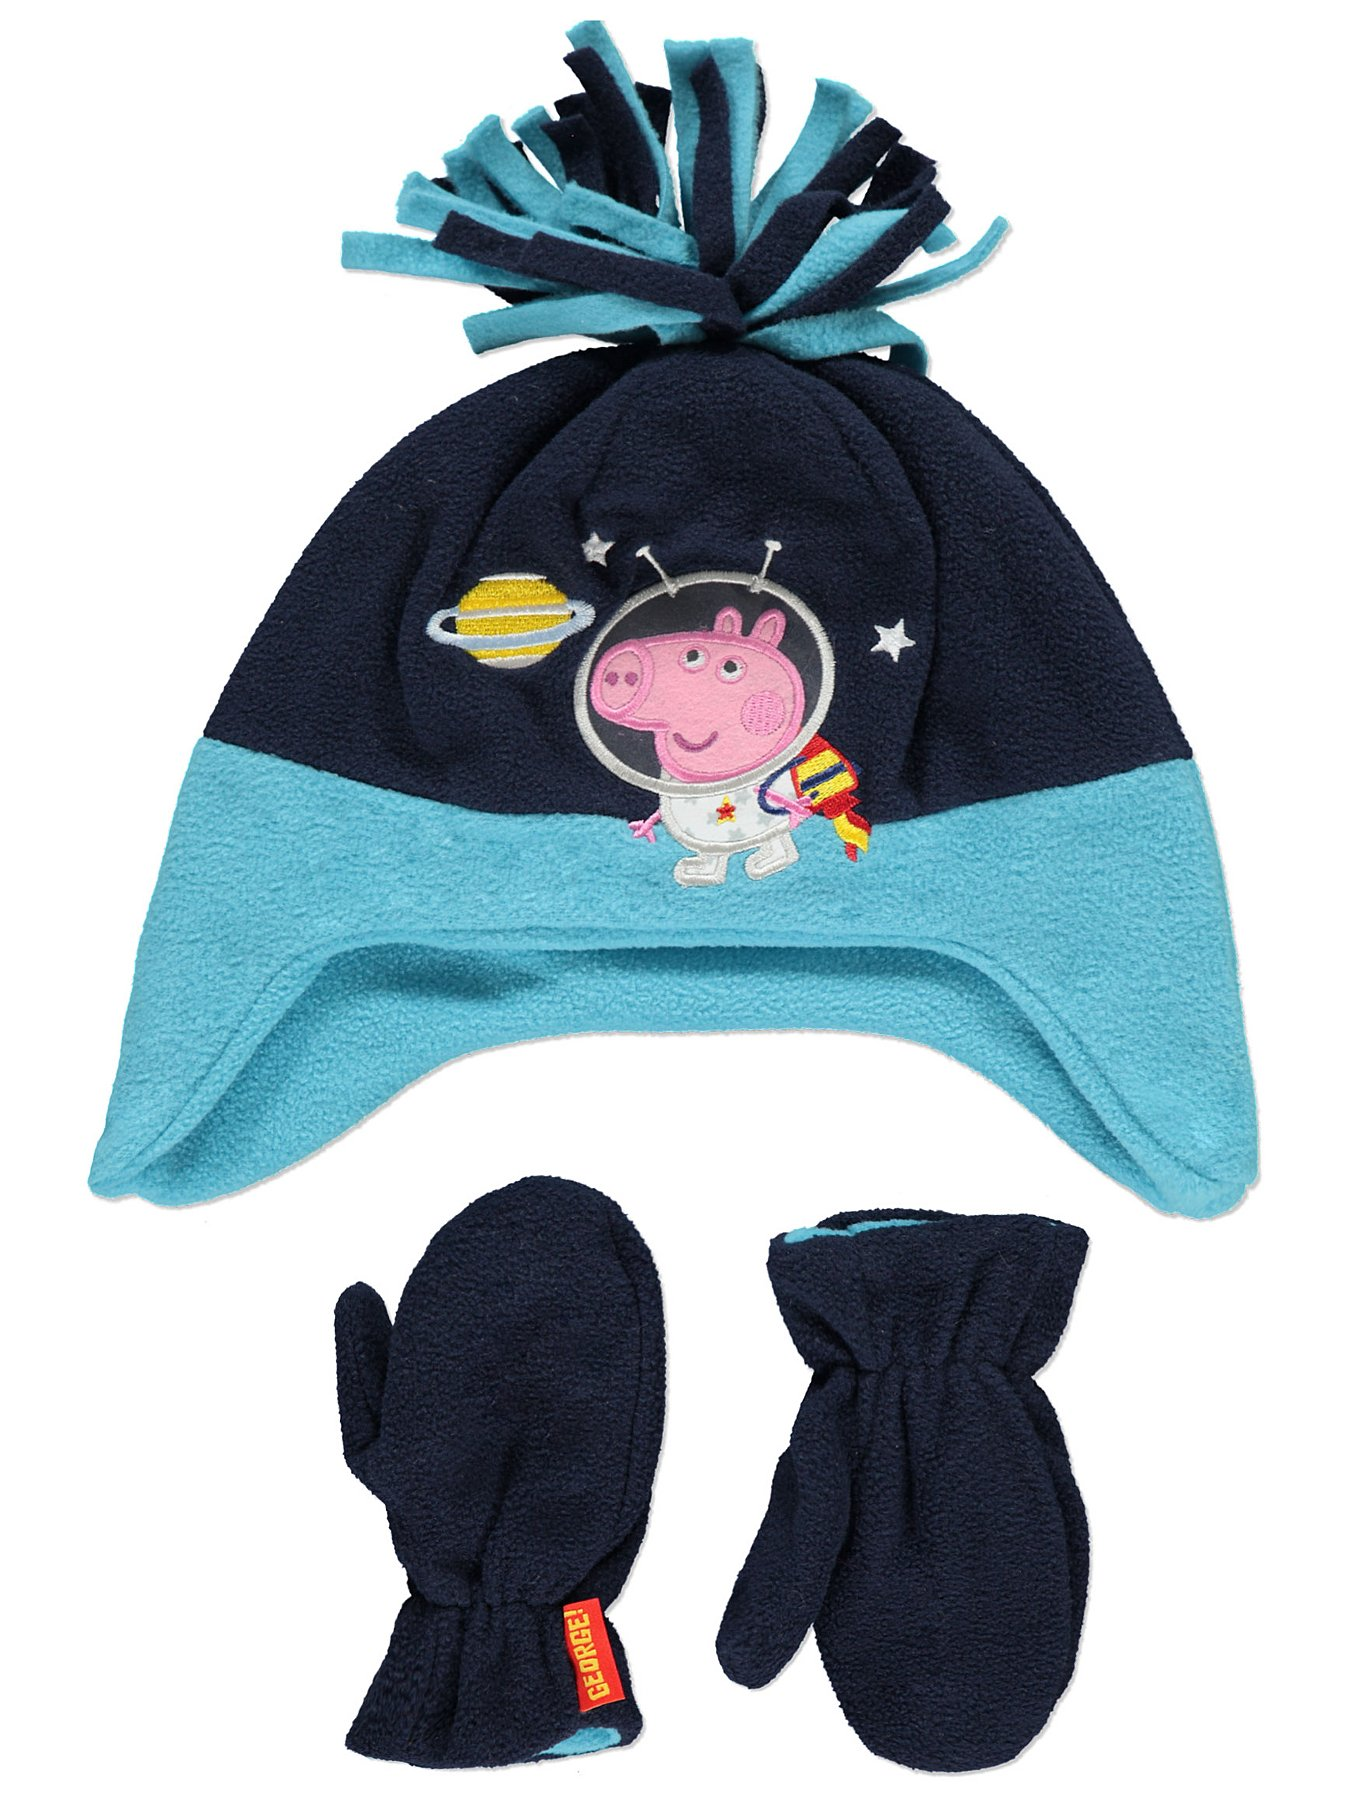 e4e799c511c21 Peppa Pig George Pig Fleece Trapper Hat and Mittens. Reset